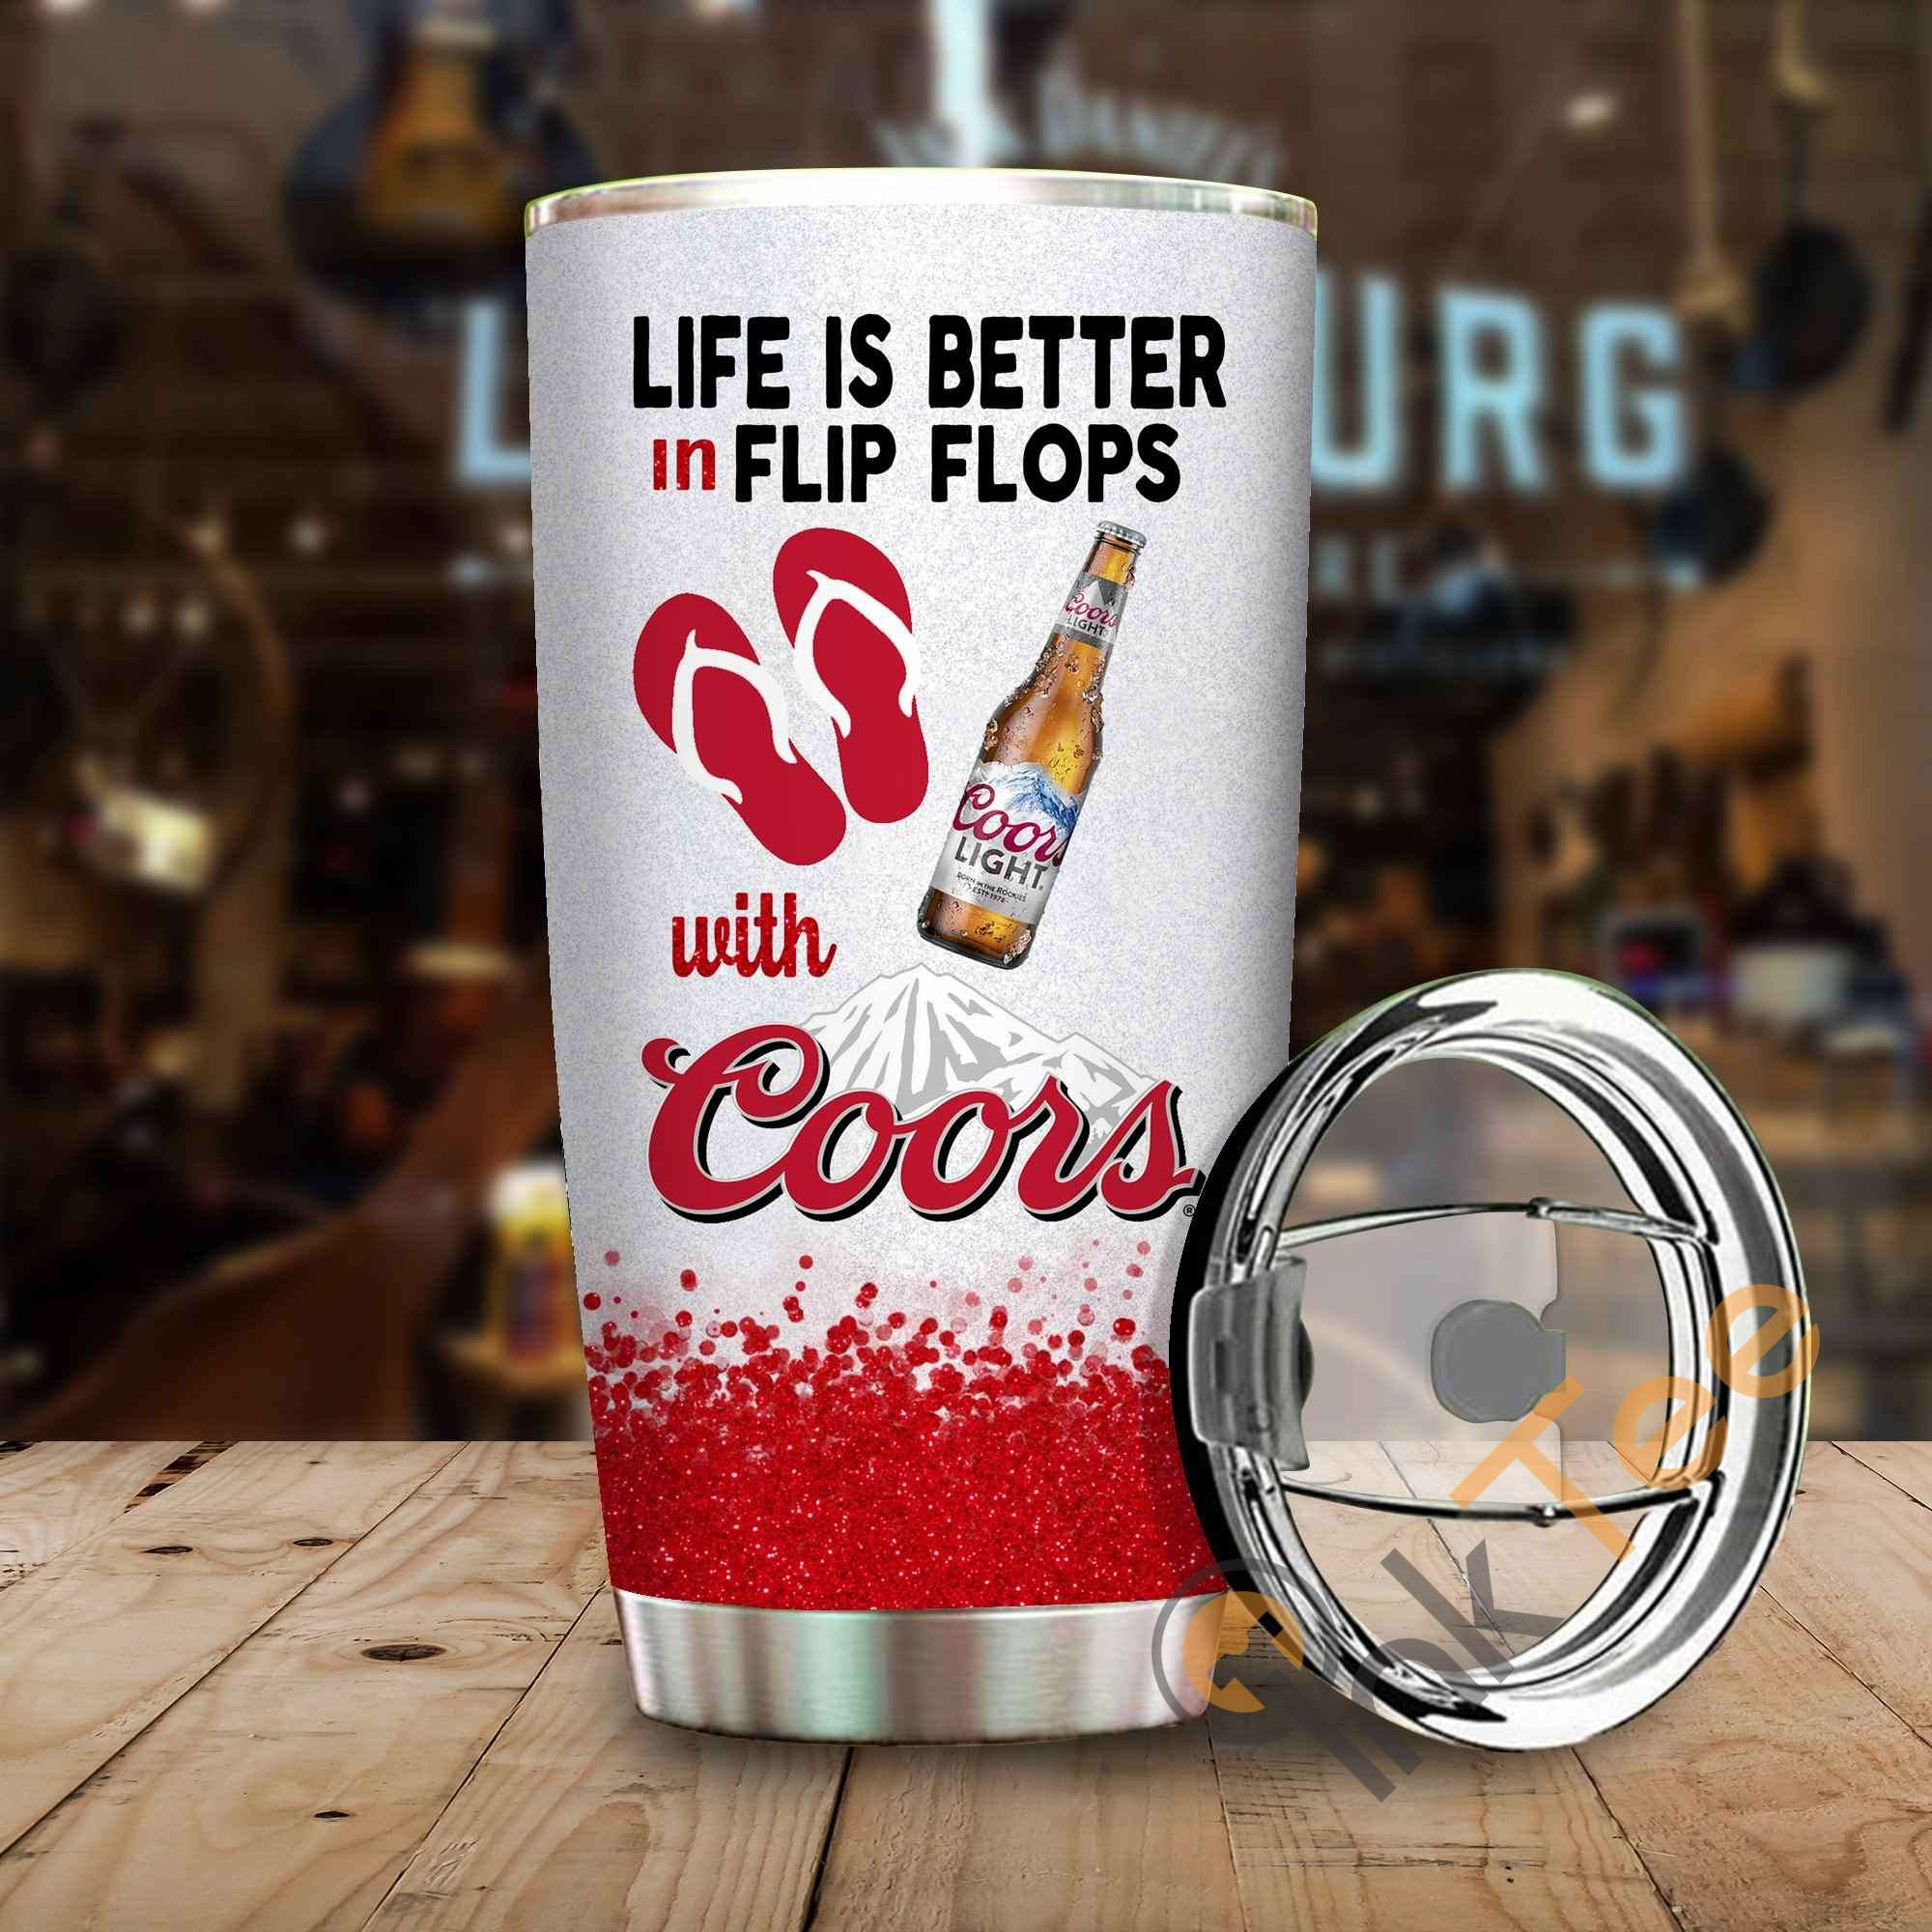 Life Is Better In Flip Flops With Coors Amazon Best Seller Sku 3991 Stainless Steel Tumbler